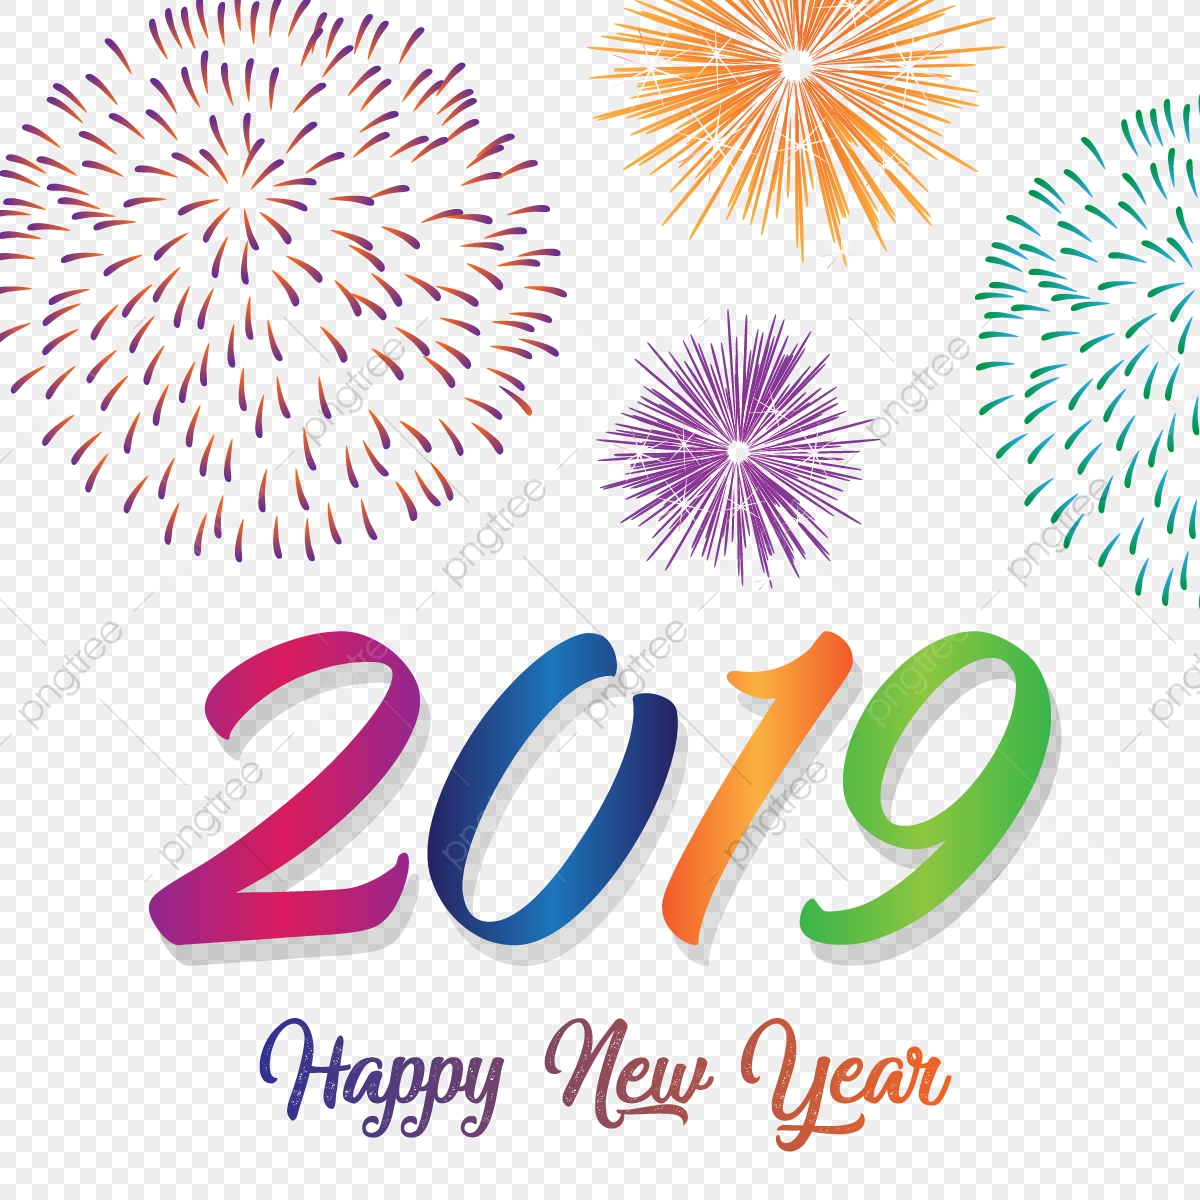 Happy New Year Images 2019 32